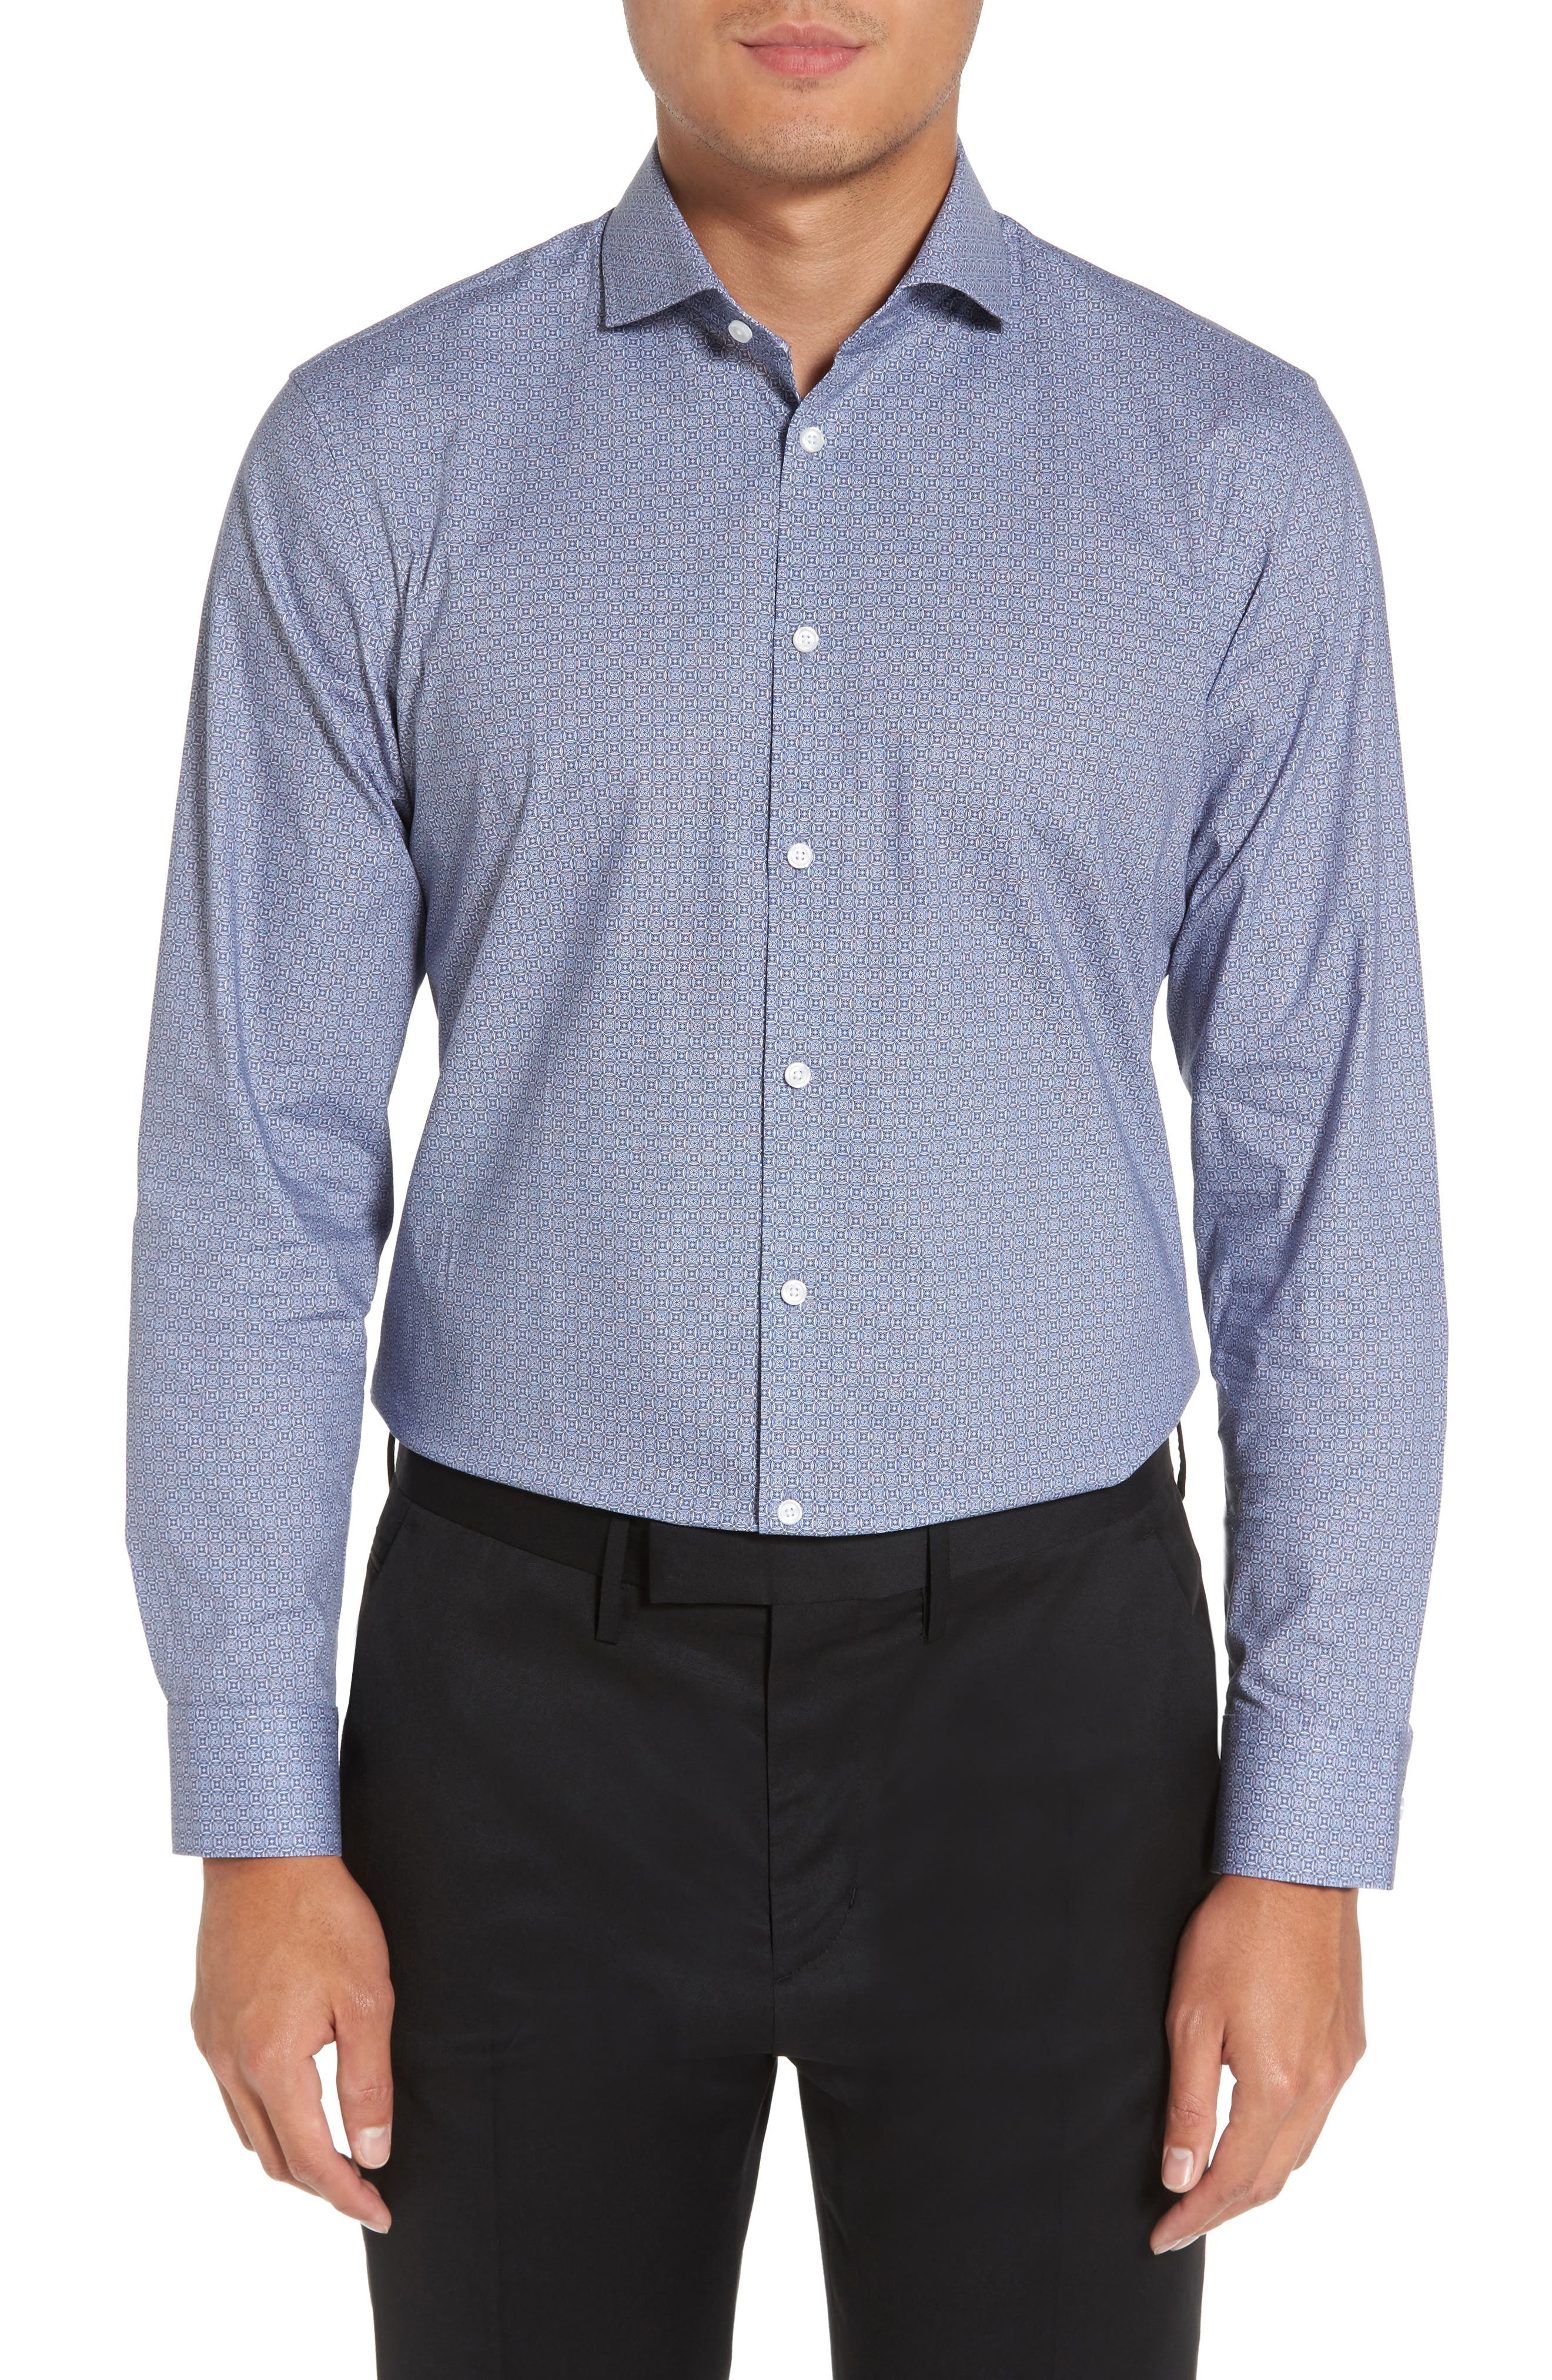 Alternate Image 2  - Calibrate Extra Trim Fit Print Stretch Dress Shirt